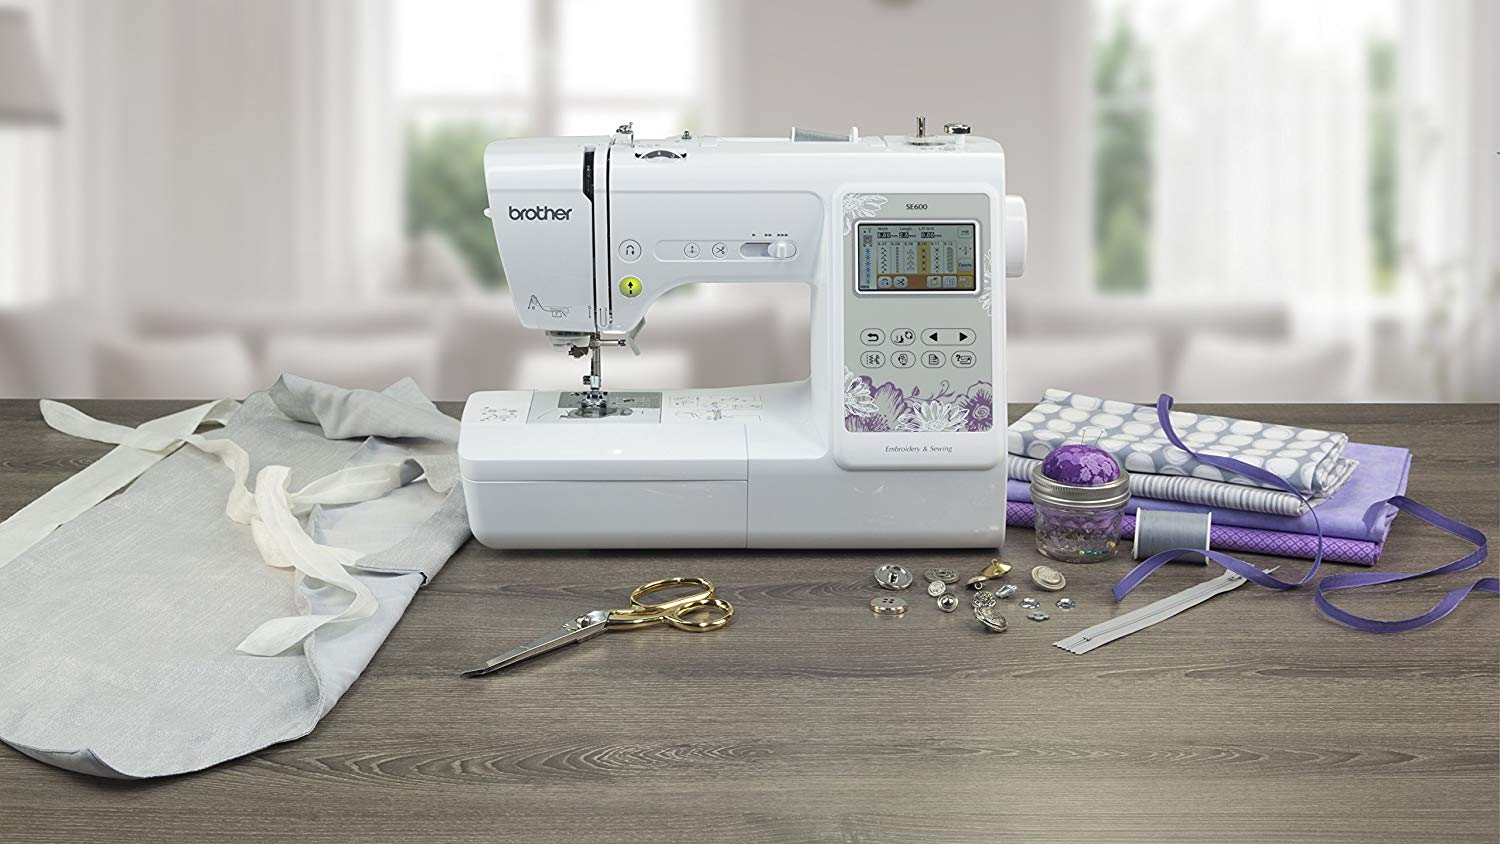 brother industrial sewing machines for sale